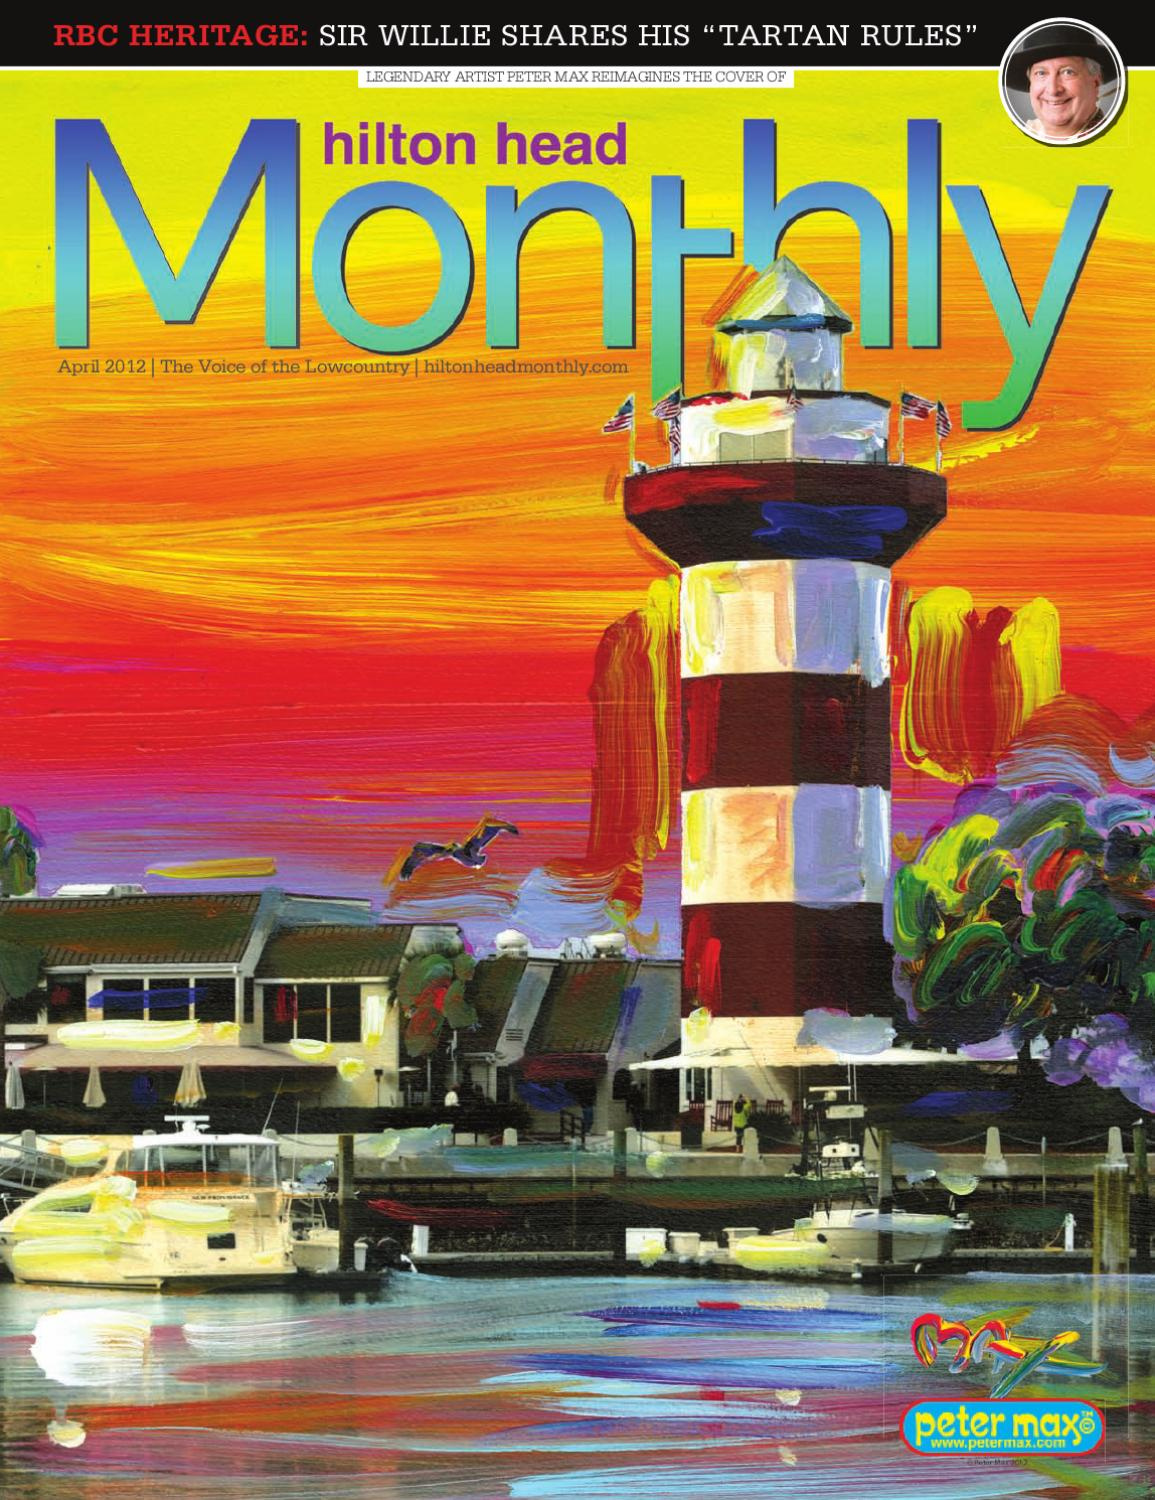 c5c30502480 Hilton Head Monthly April 2012 by Hilton Head Monthly - issuu